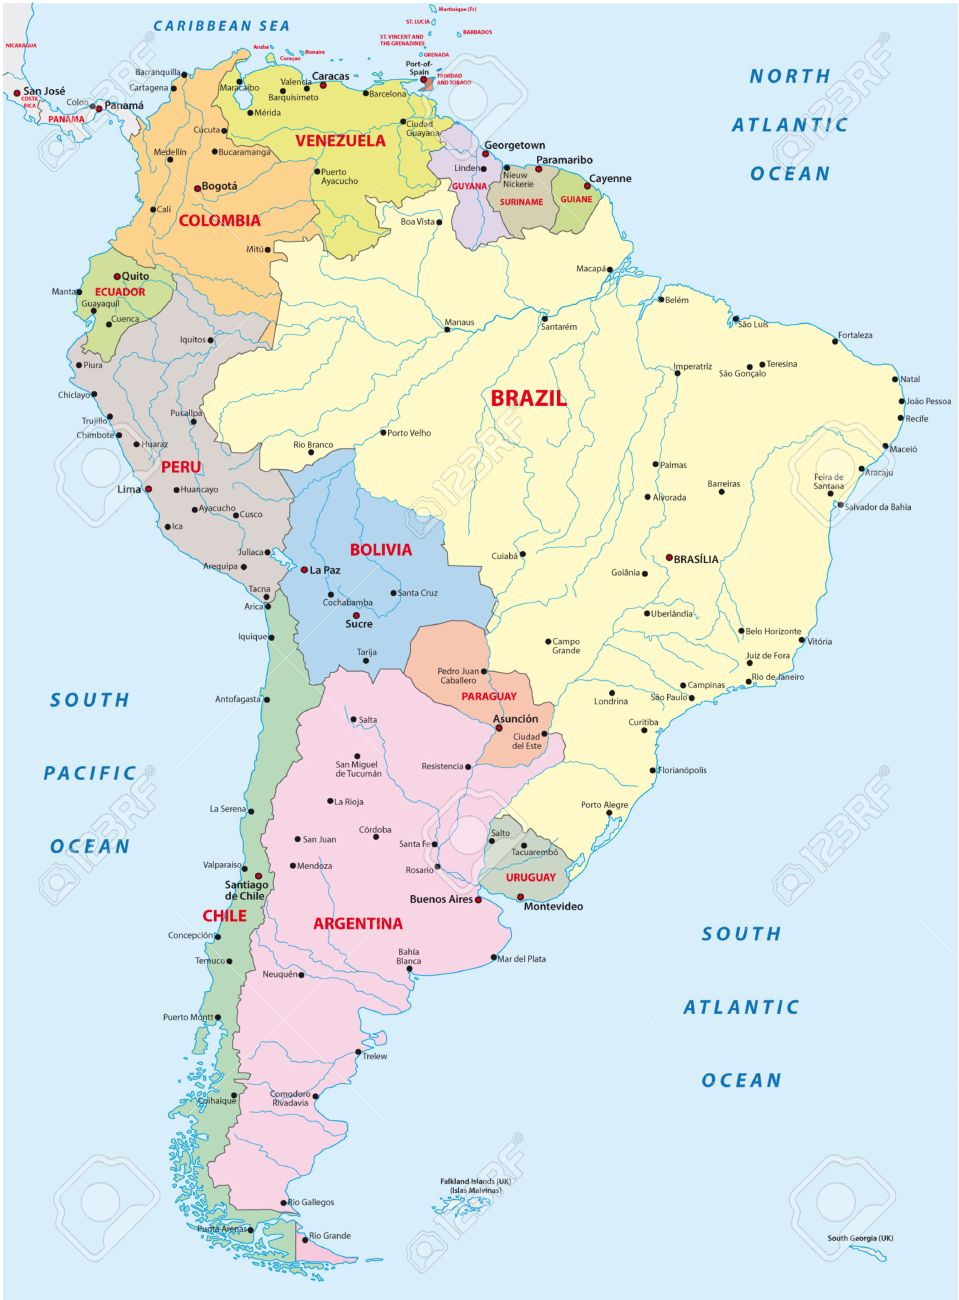 South America Map Stock Vector Illustration And Royalty - Sur america map